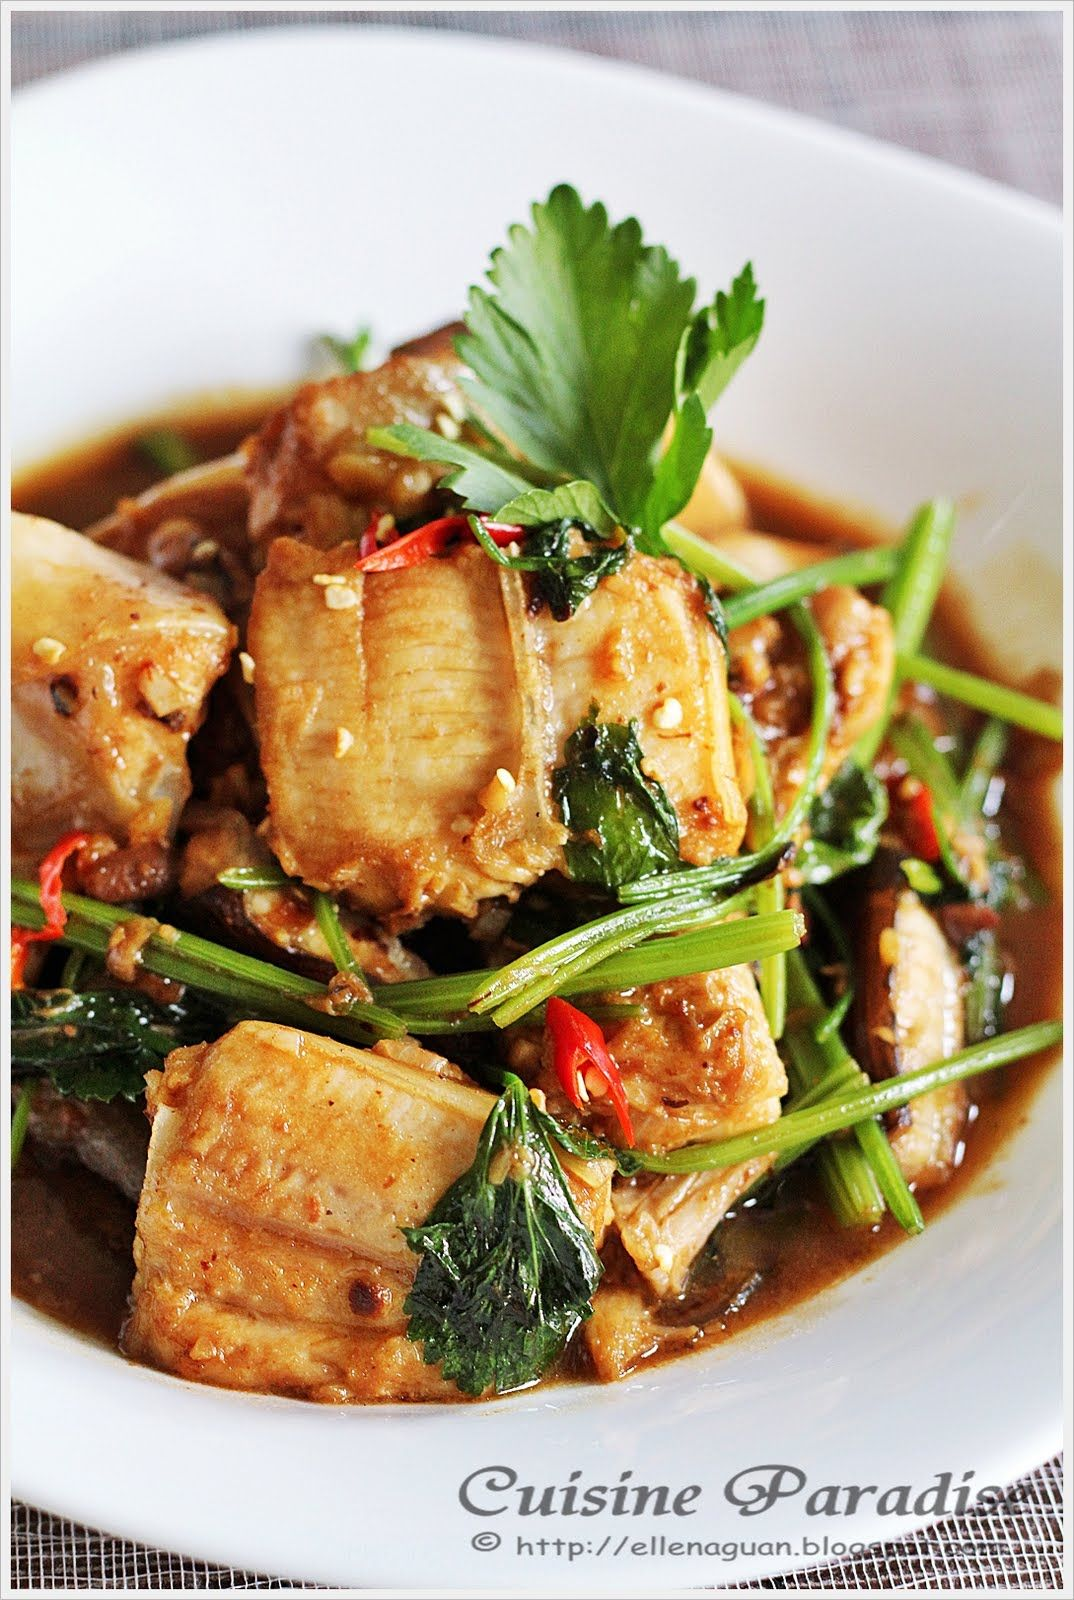 Cuisine paradise singapore food blog recipes reviews and travel cuisine paradise singapore food blog recipes reviews and travel stir fried forumfinder Image collections